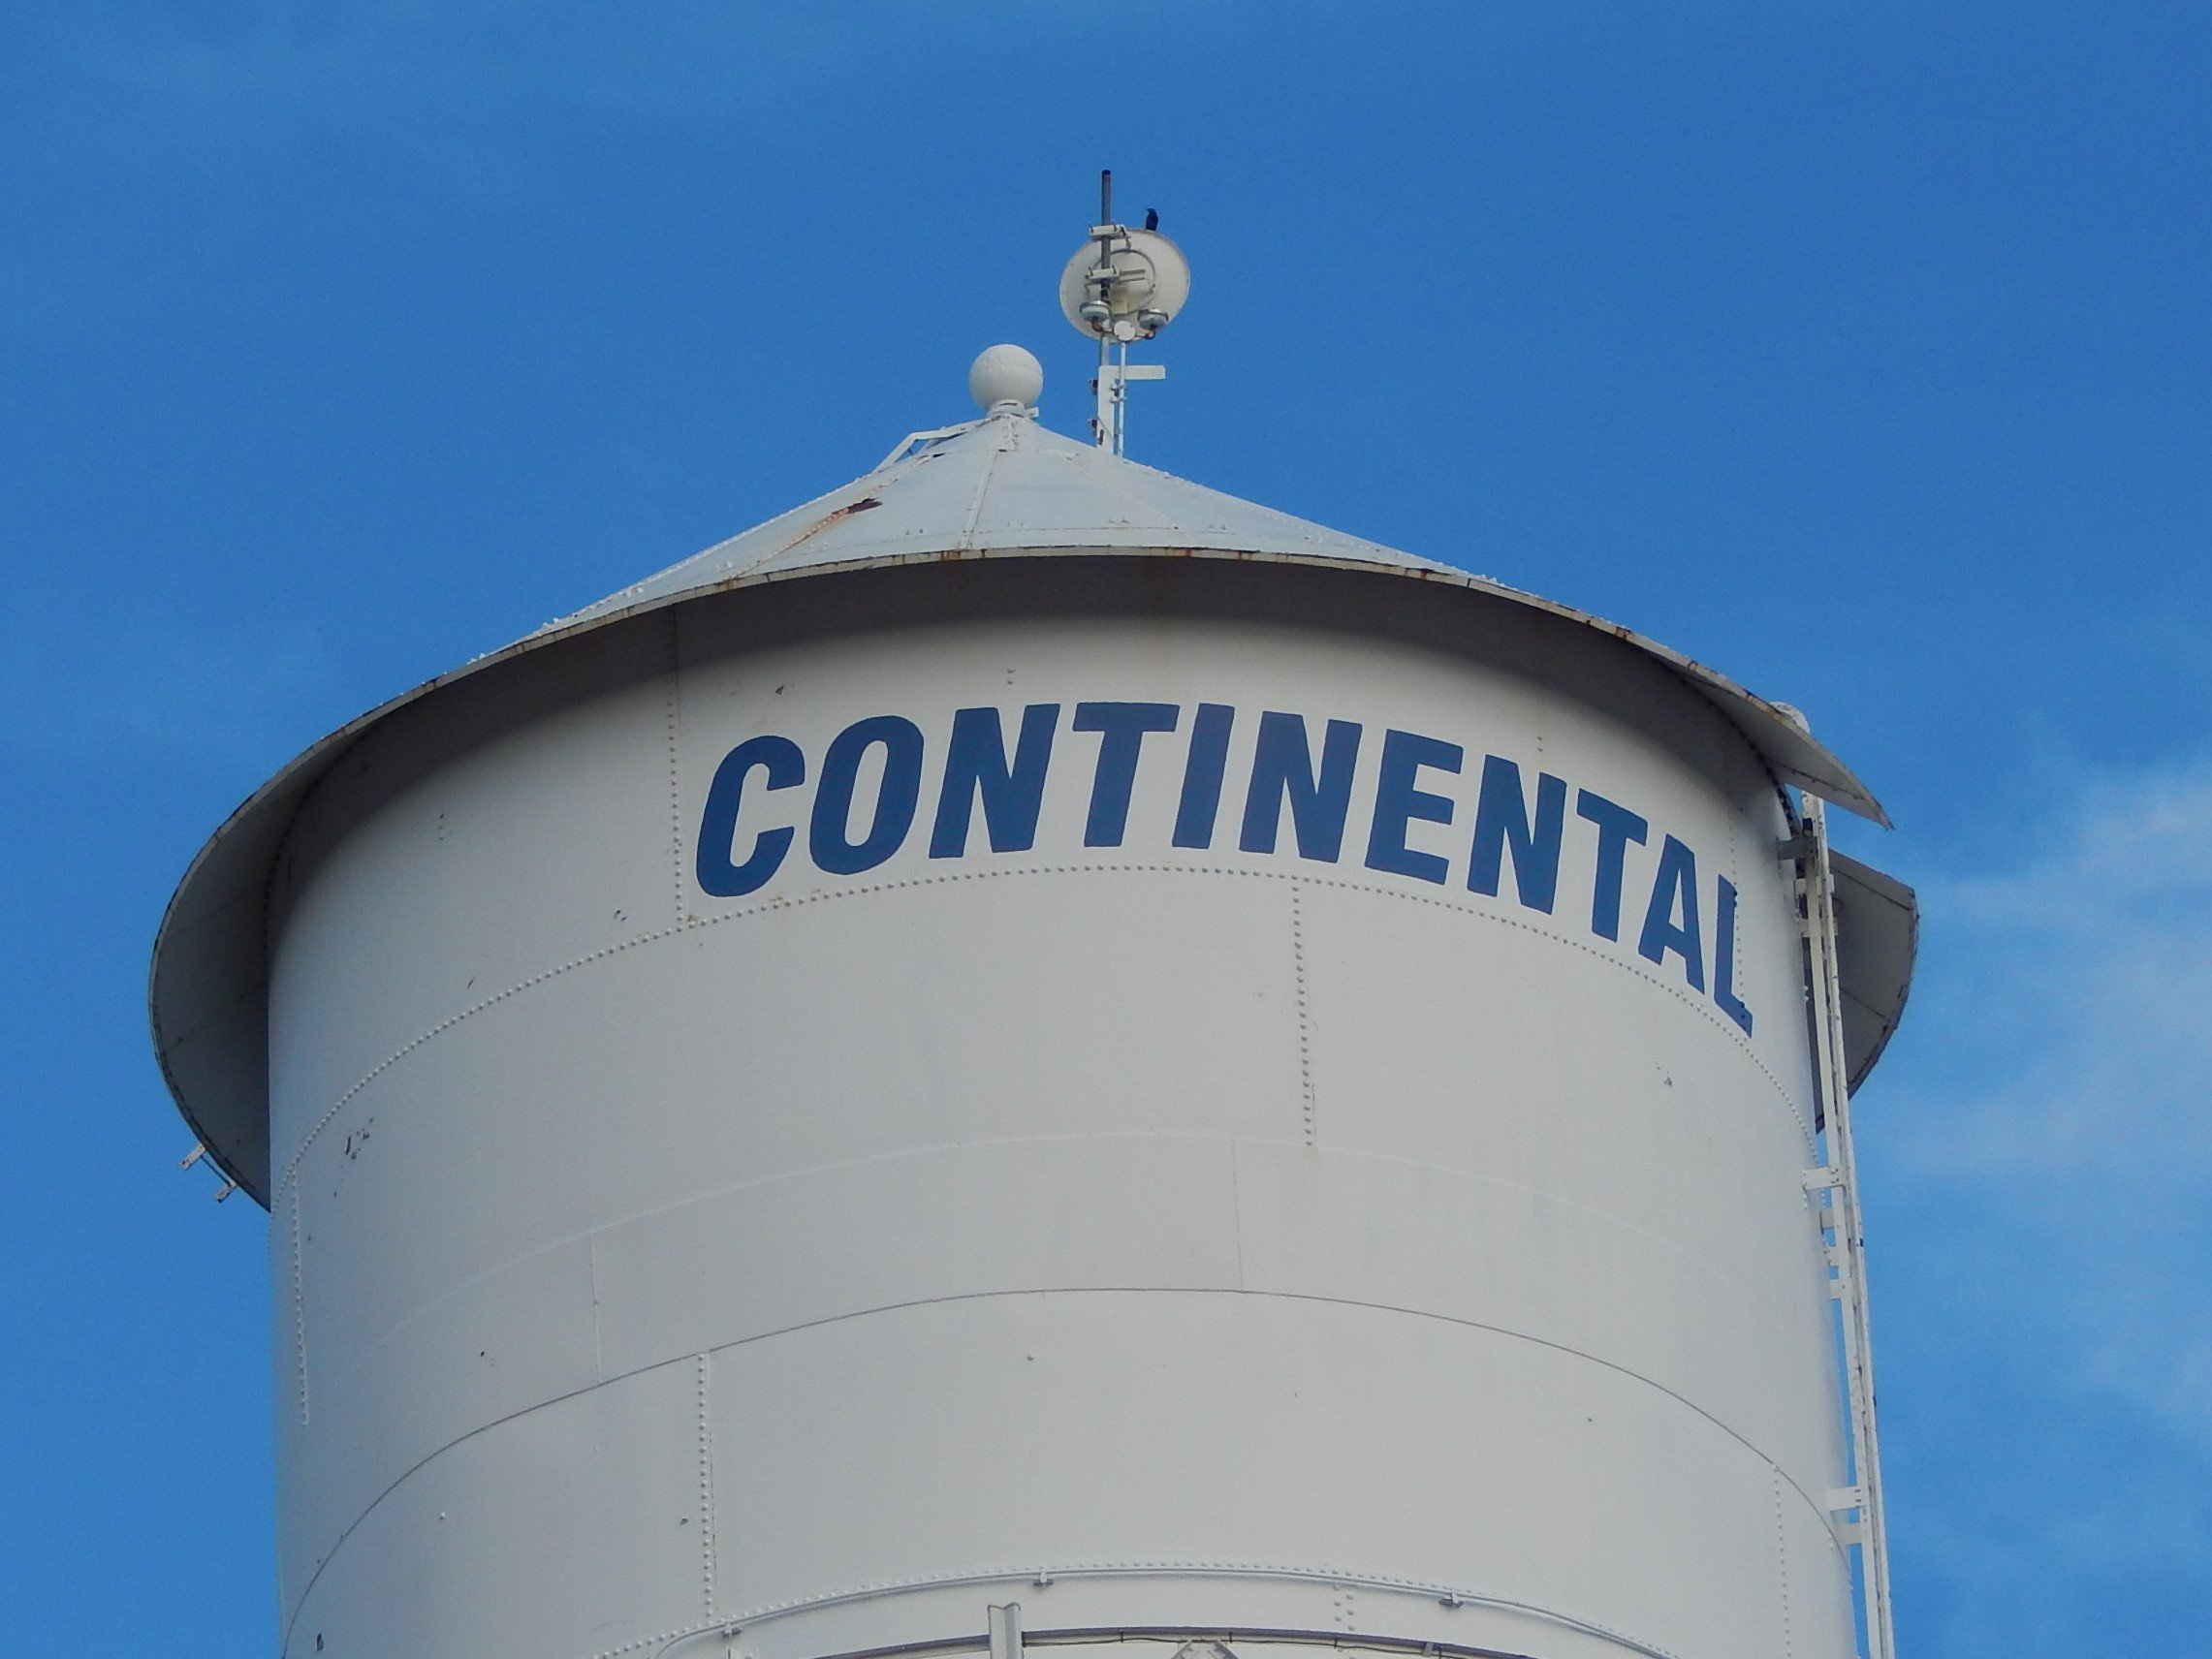 This Week in Continental, July 15 - 21 - Continental eNews